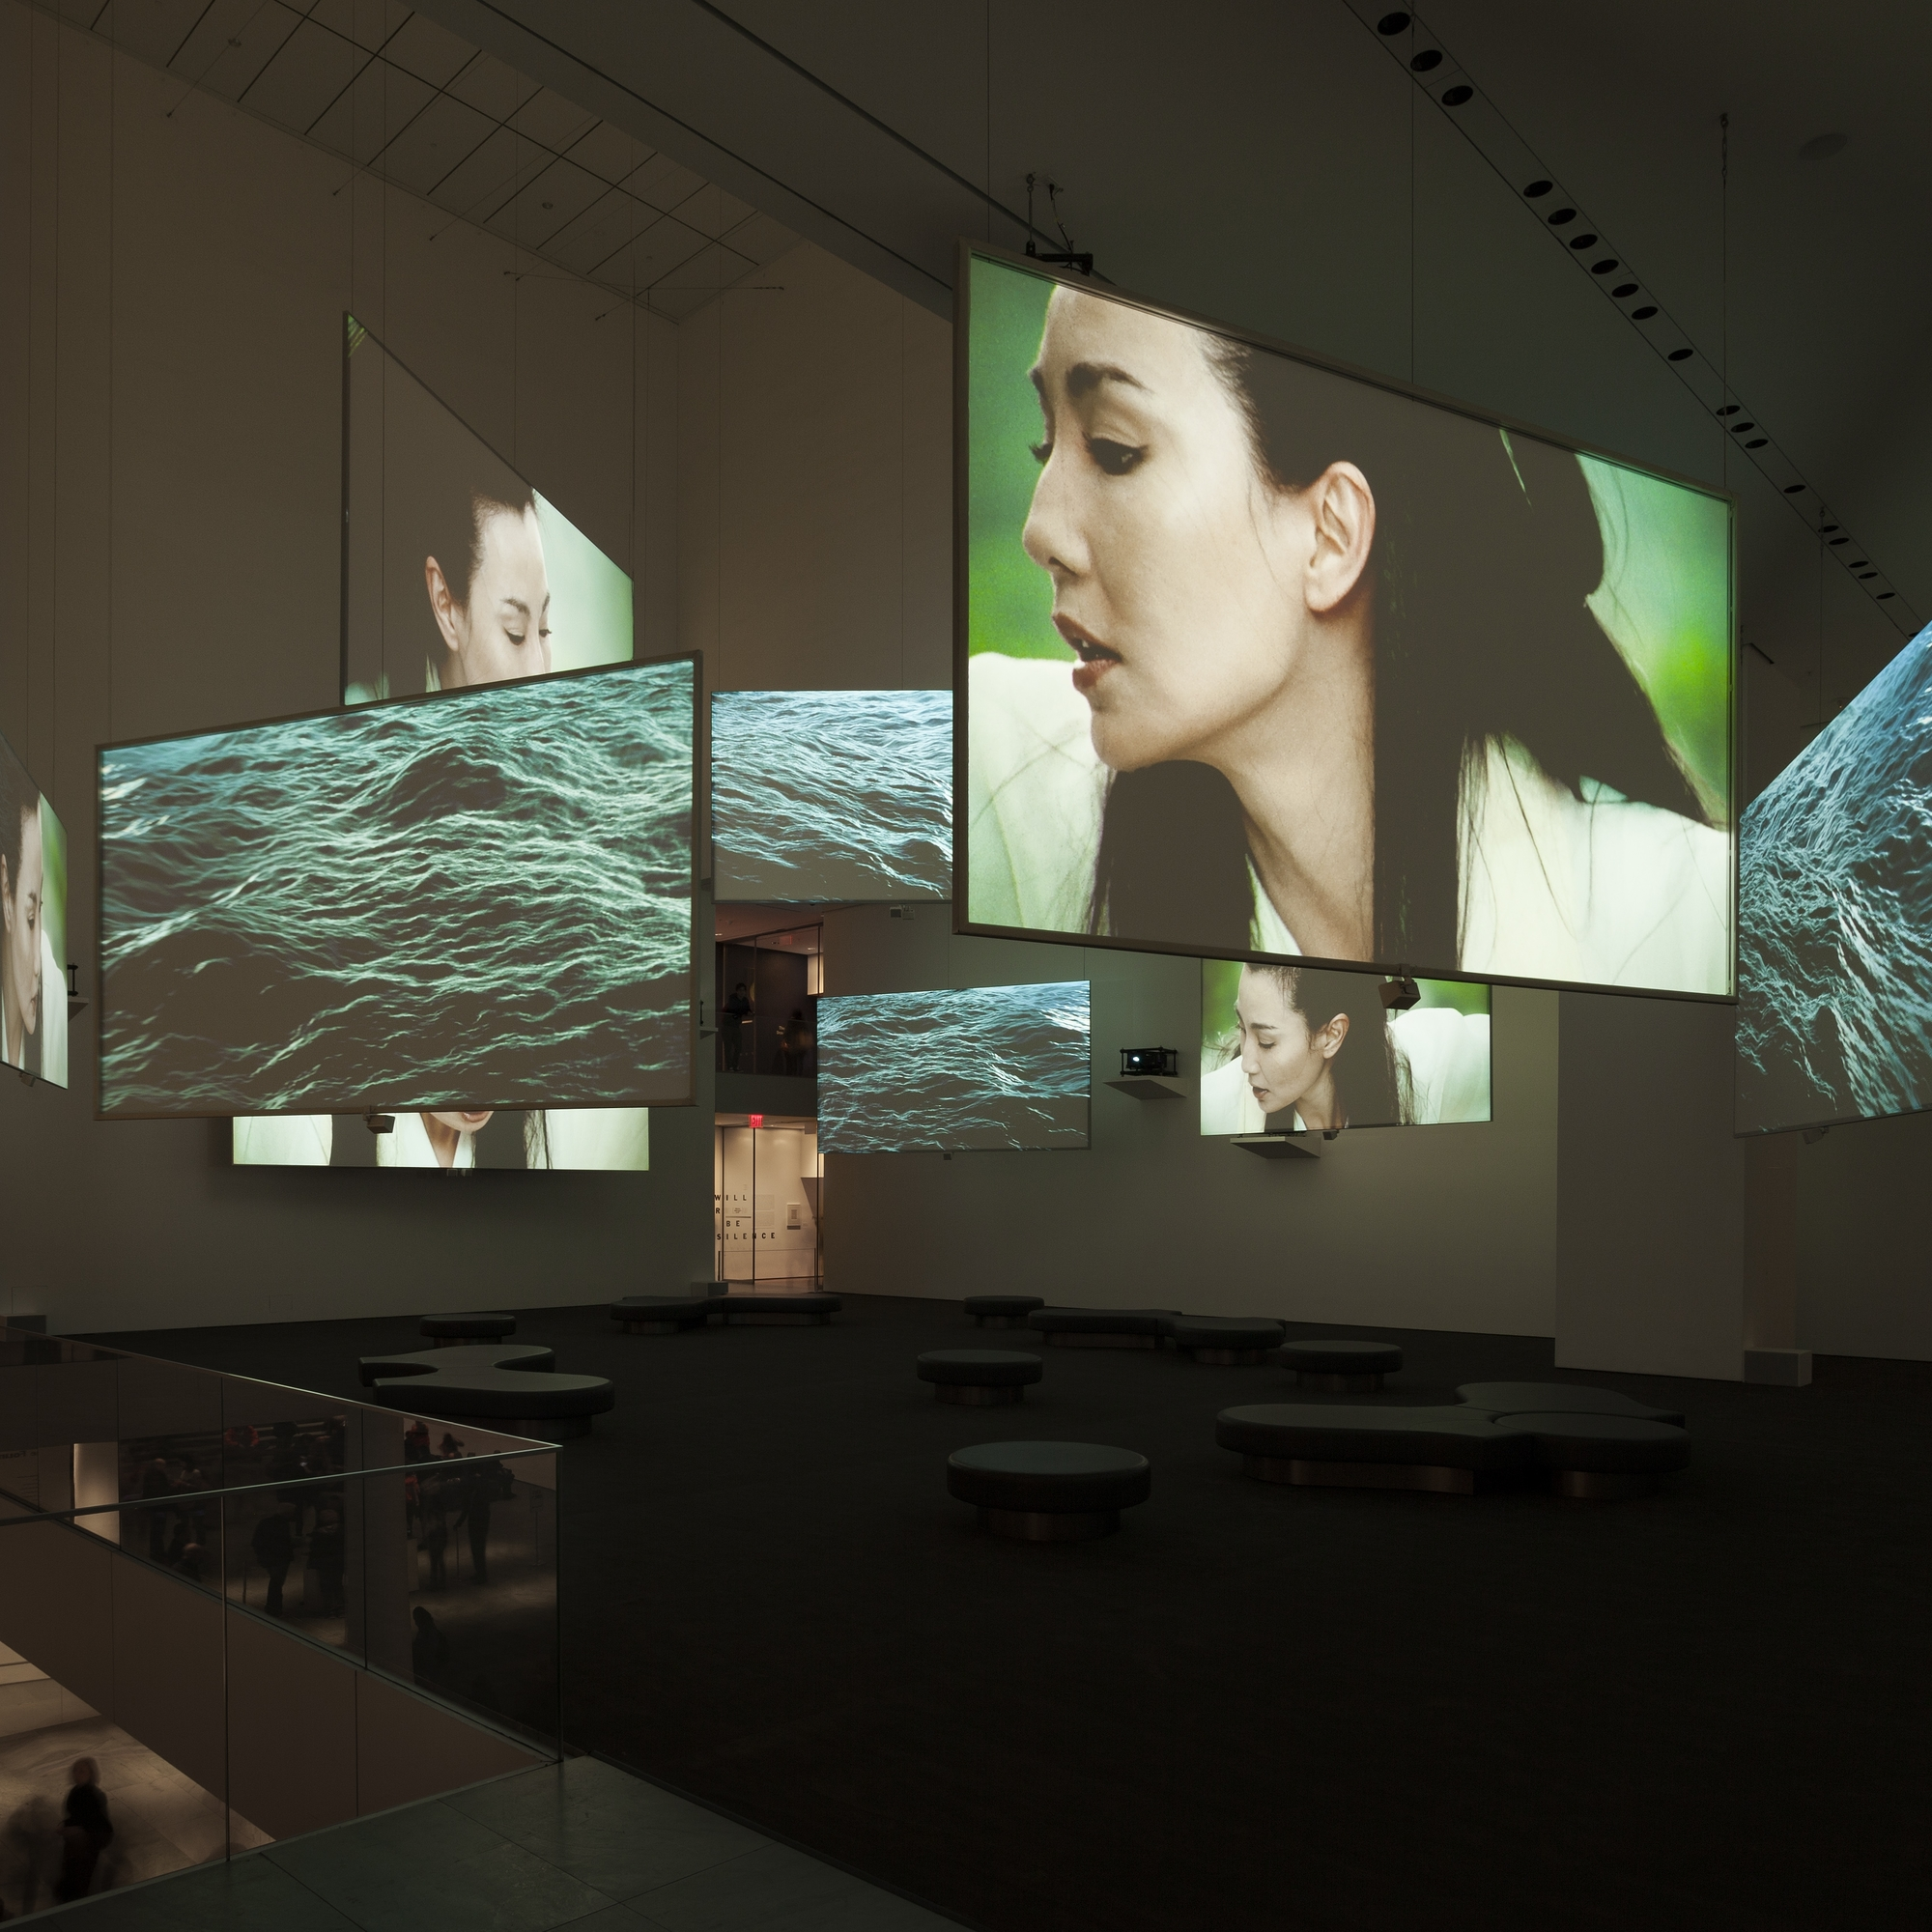 Isaac Julien. Ten Thousand Waves. 2010. Nine-channel video installation (color, sound). 49:41 min. The Michael H. Dunn Memorial Fund. The Museum of Modern Art, New York. Photo: Jonathan Muzikar.